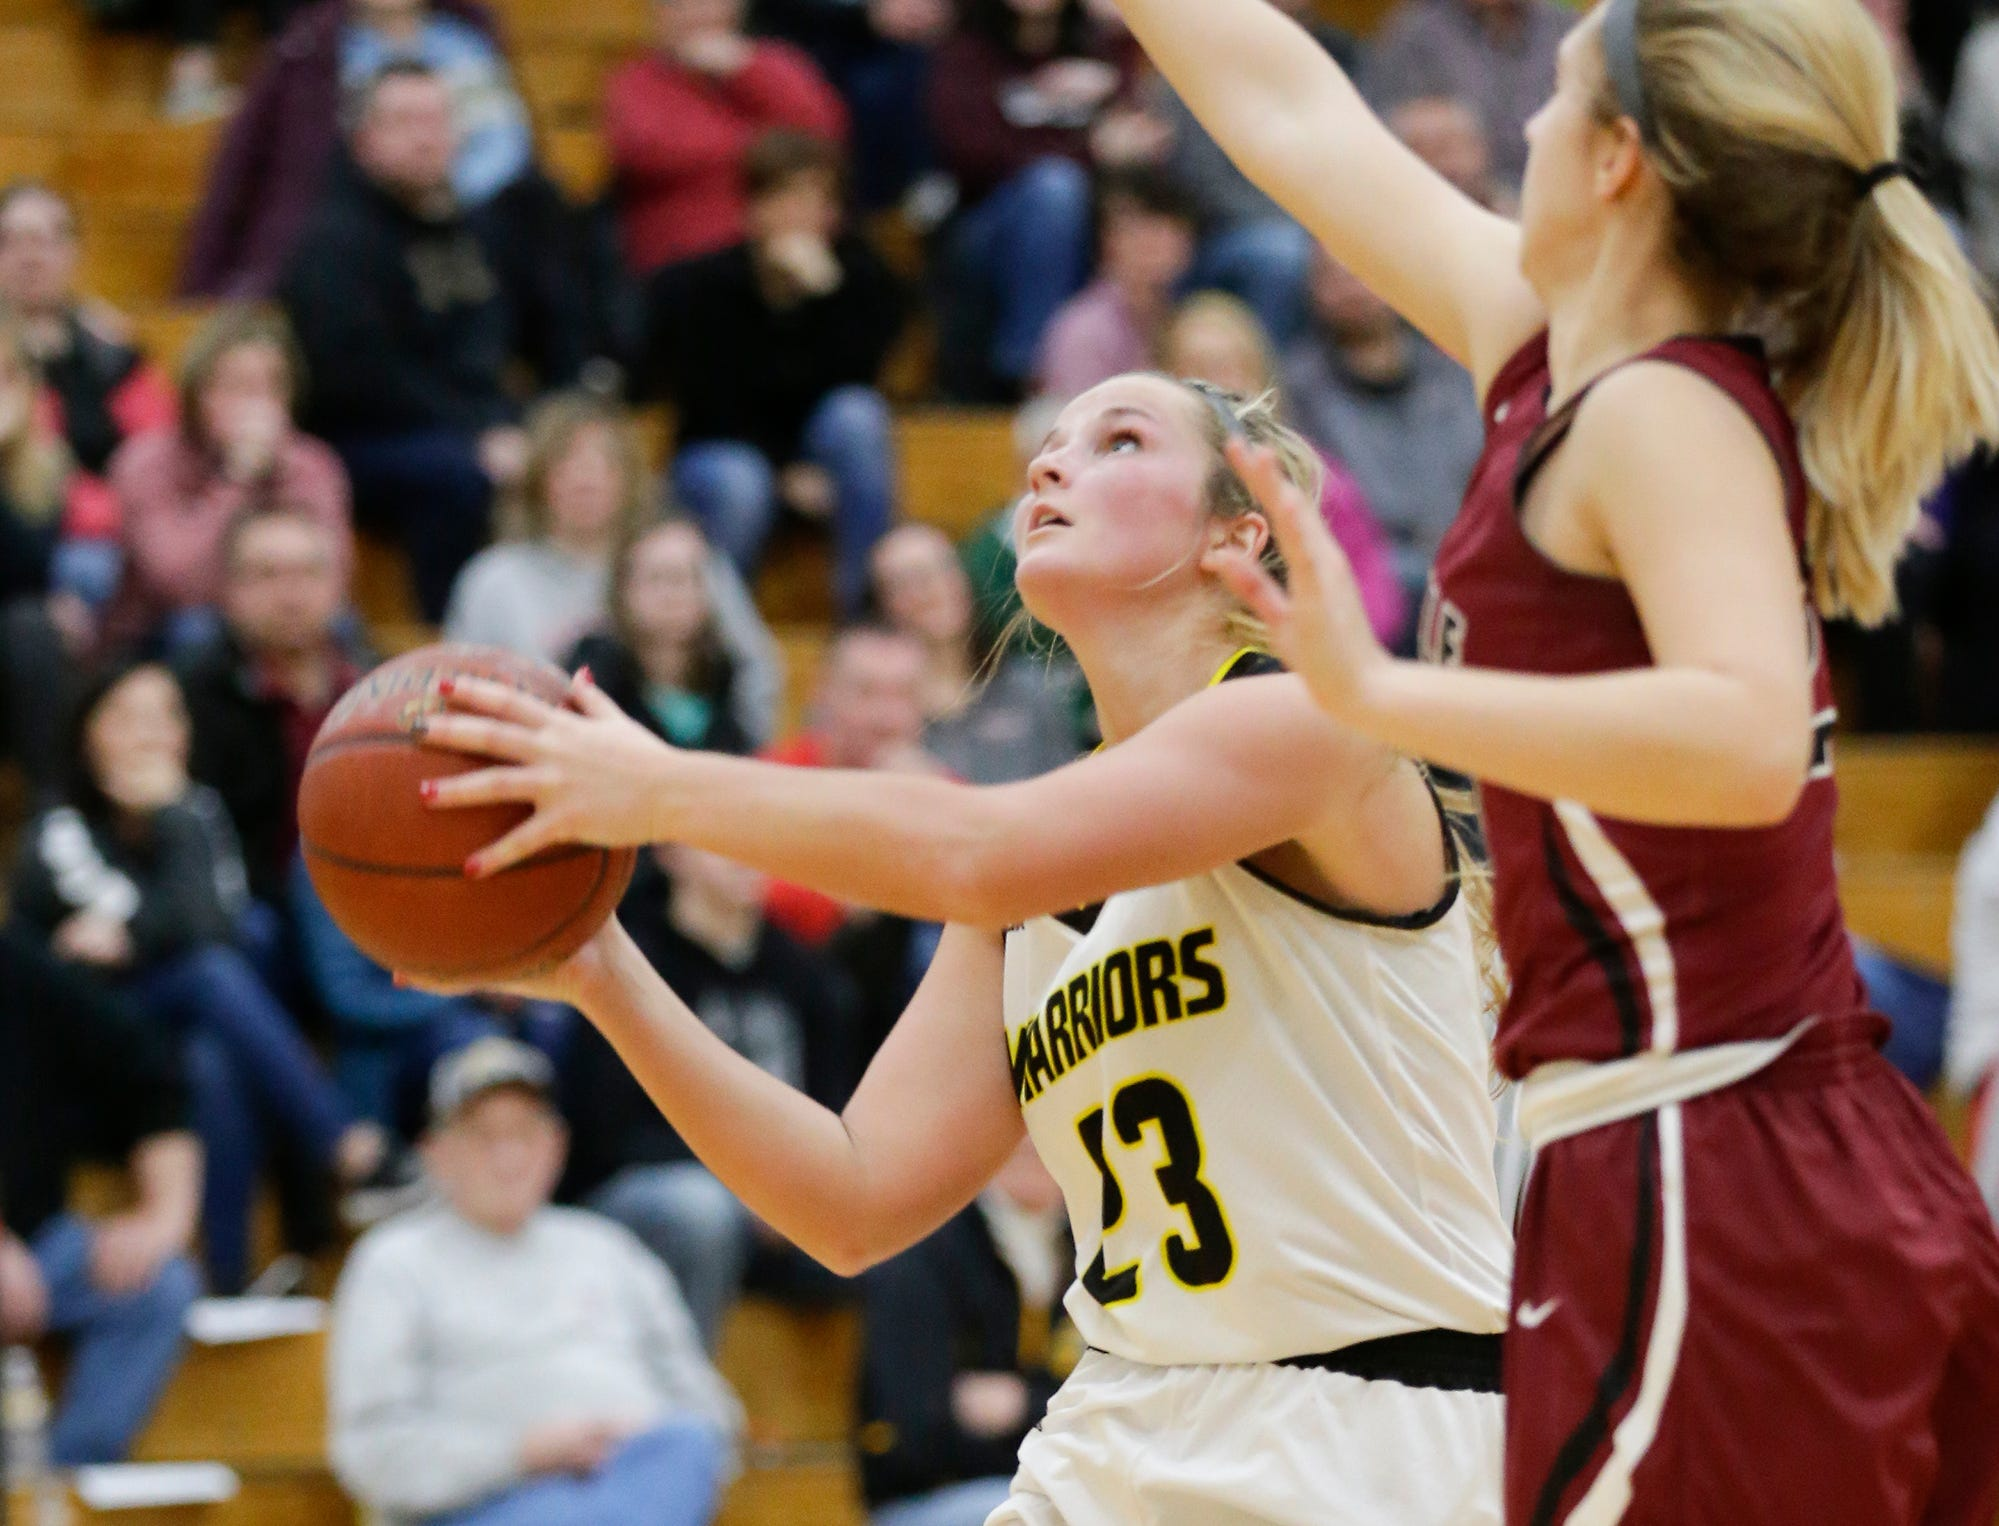 Waupun High School girls basketball's Claire Harder (23) moves in for a basket while being defended by Mayville High School's Chloe Welak (21) Saturday, February 23, 2019 during their WIAA Division 4 sectional quarterfinal game in Waupun. Waupun won the game 62-45. Doug Raflik/USA TODAY NETWORK-Wisconsin